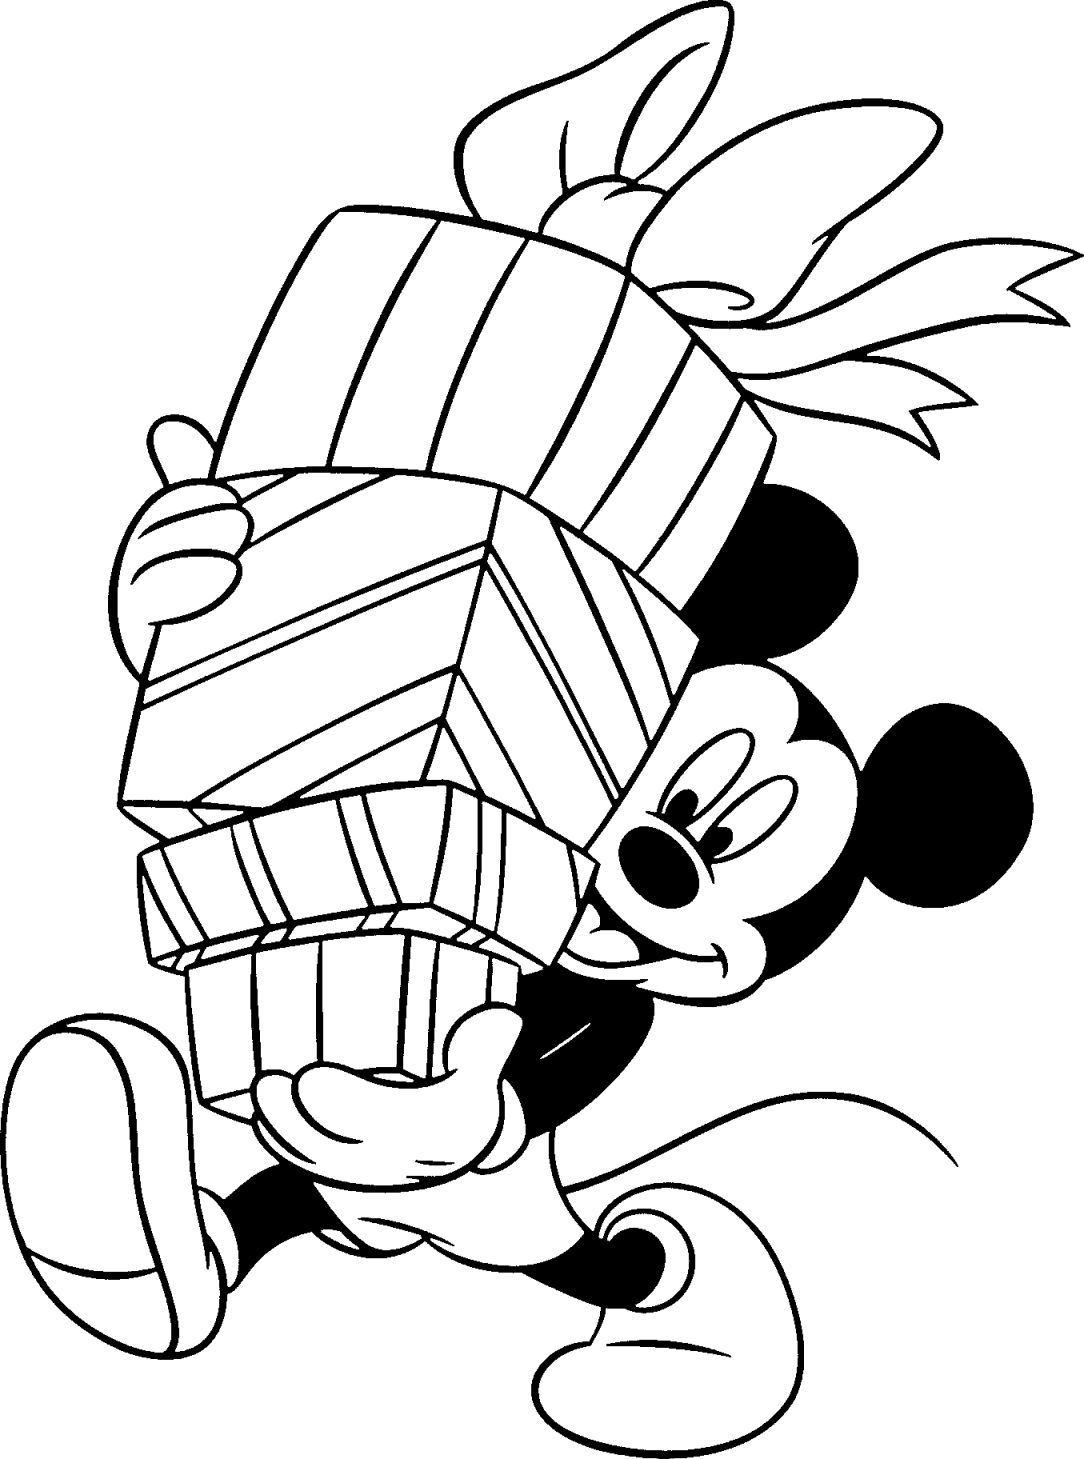 Disney Christmas Coloring Pages | crafts | Pinterest | Disney ...